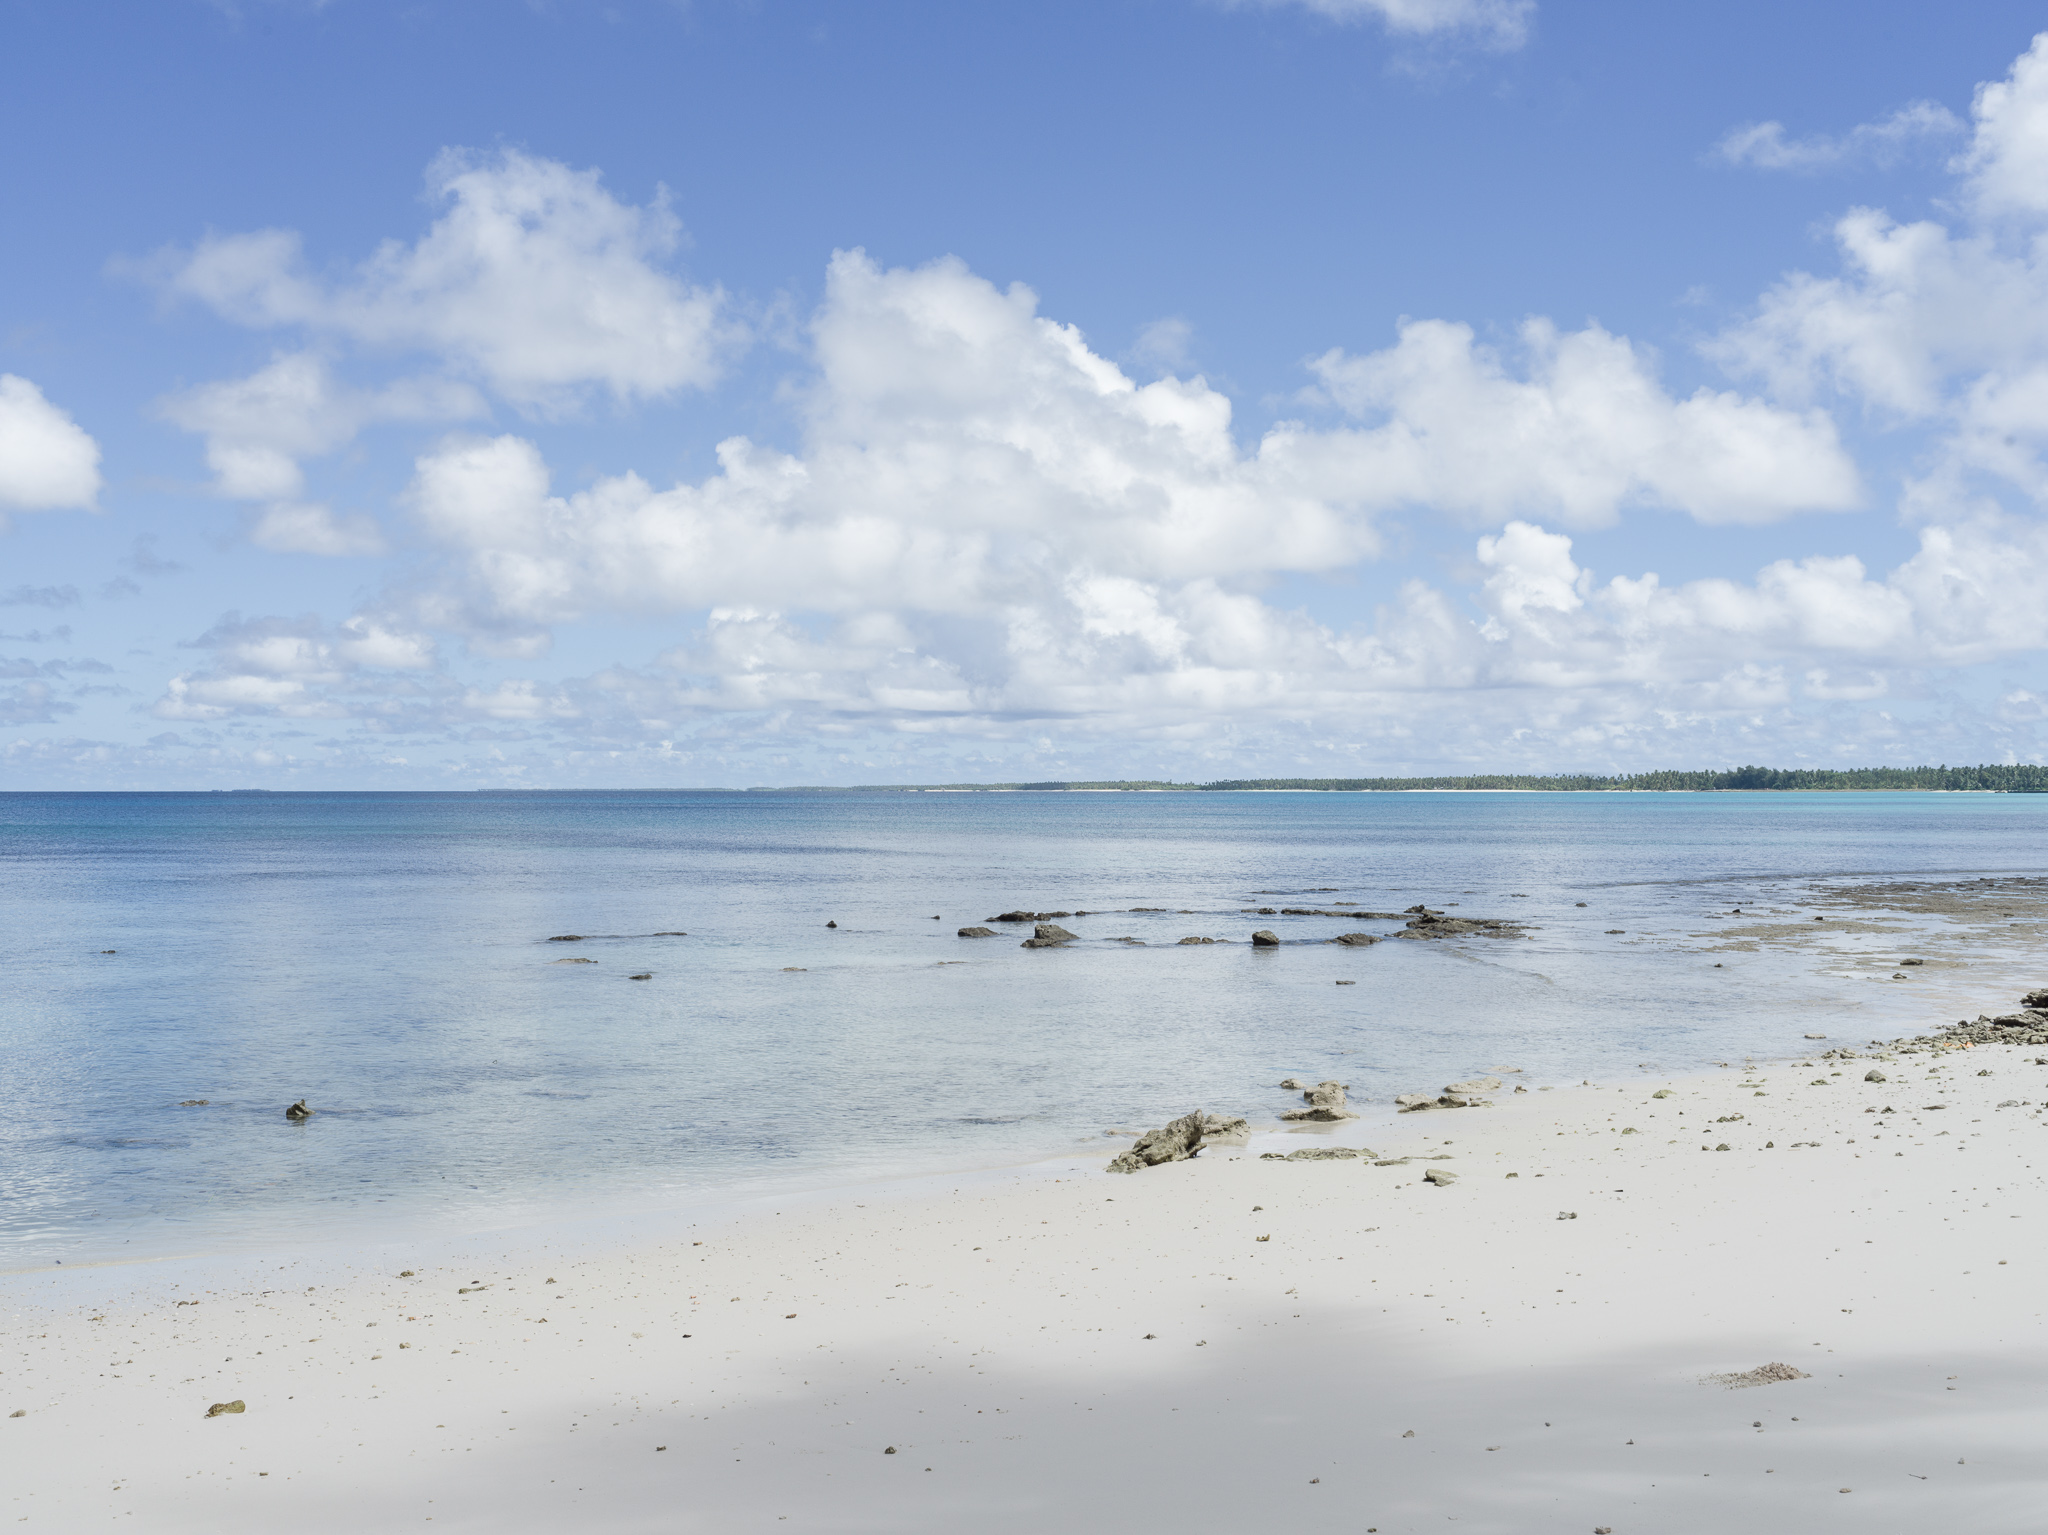 American bomb crater on reef, Wotje Island, Wotje Atoll, Marshall Islands_Matthew Arnold